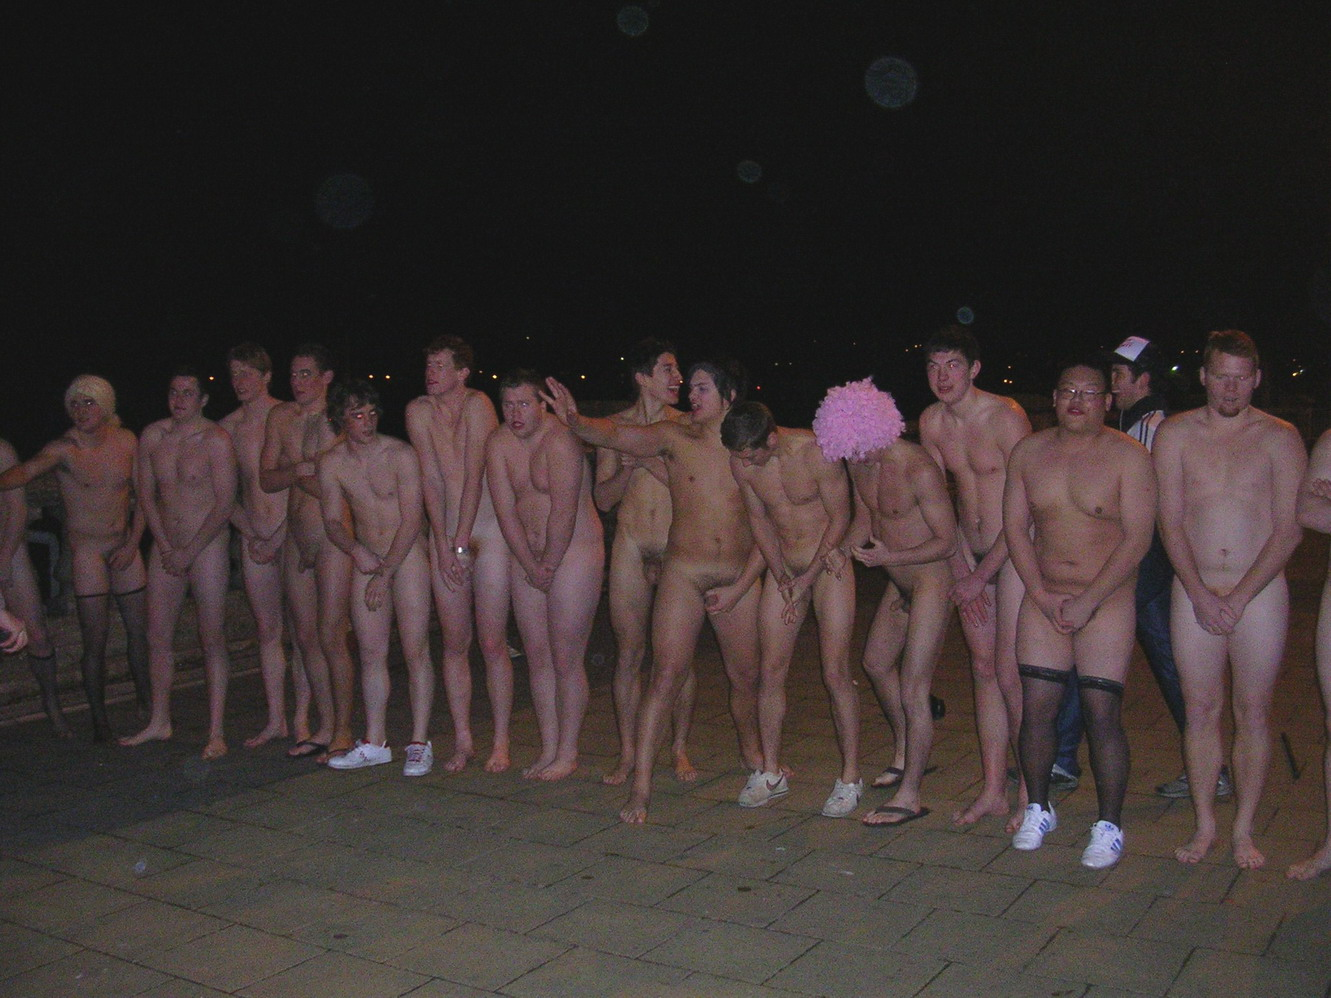 Sorority Initiation Naked Males Why 75